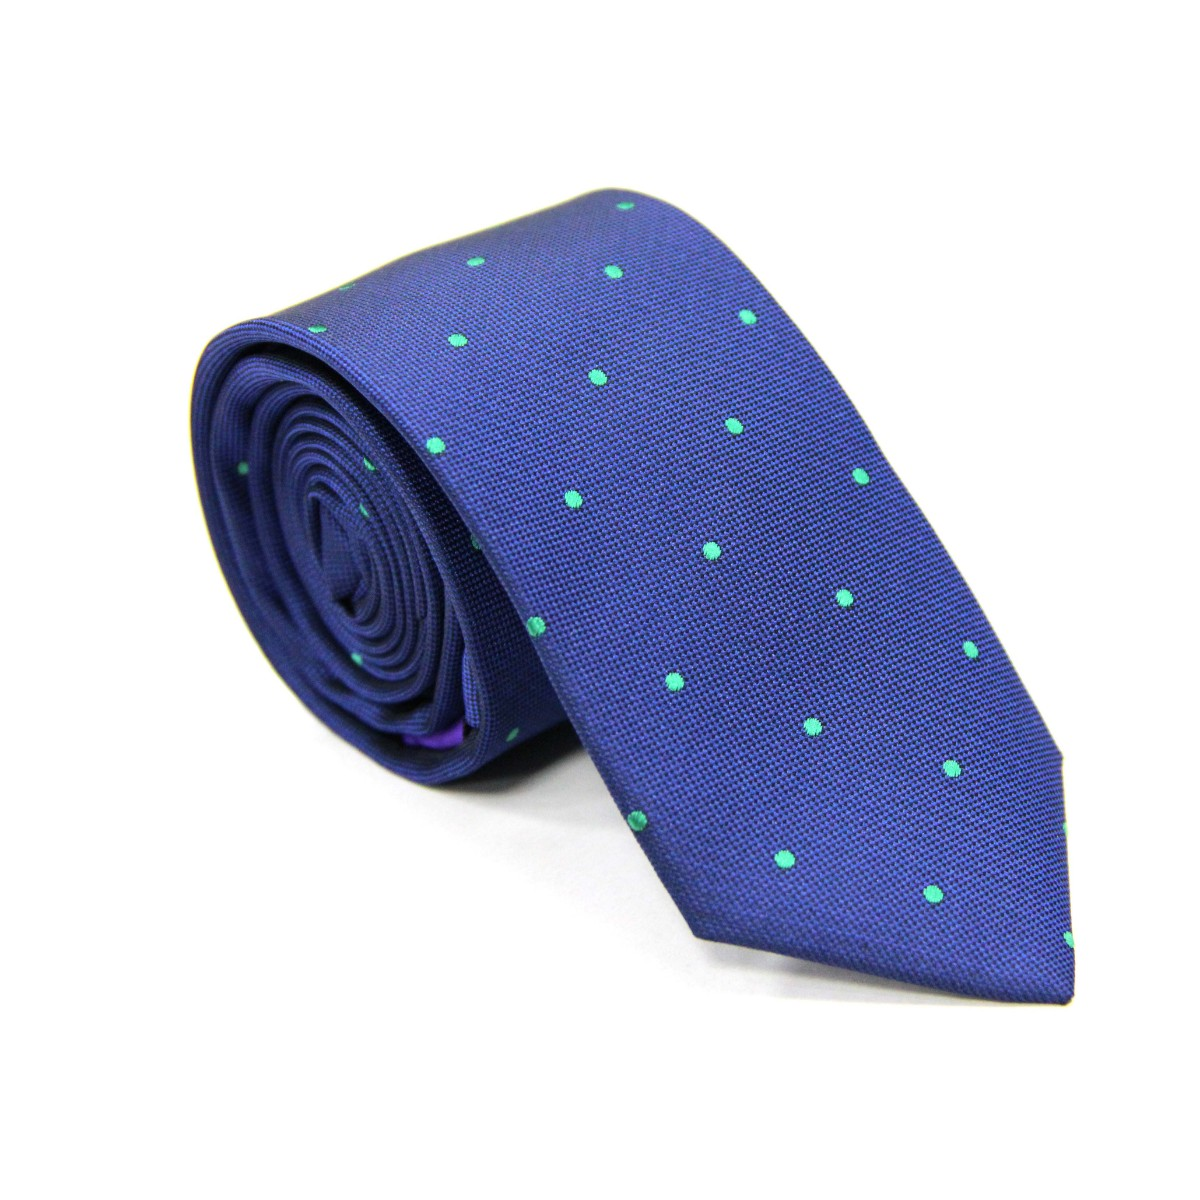 Green Polka Dot Navy Tie for Groomsmen Australia